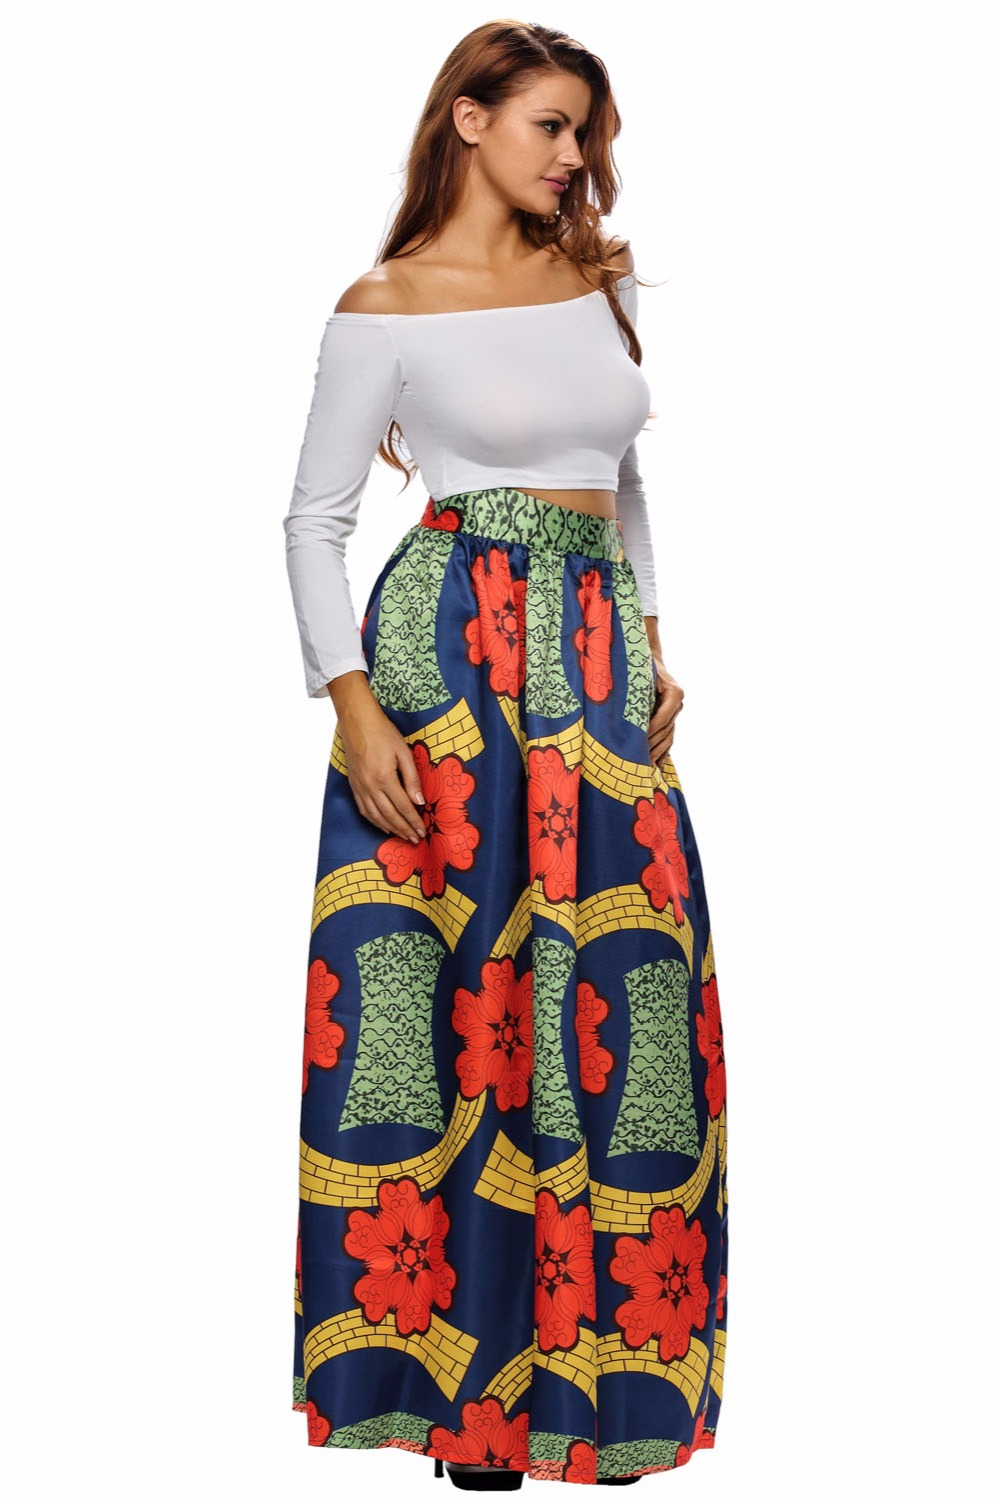 Big Size Women Skirt Summer Wear Skirts Colorful Floral ...